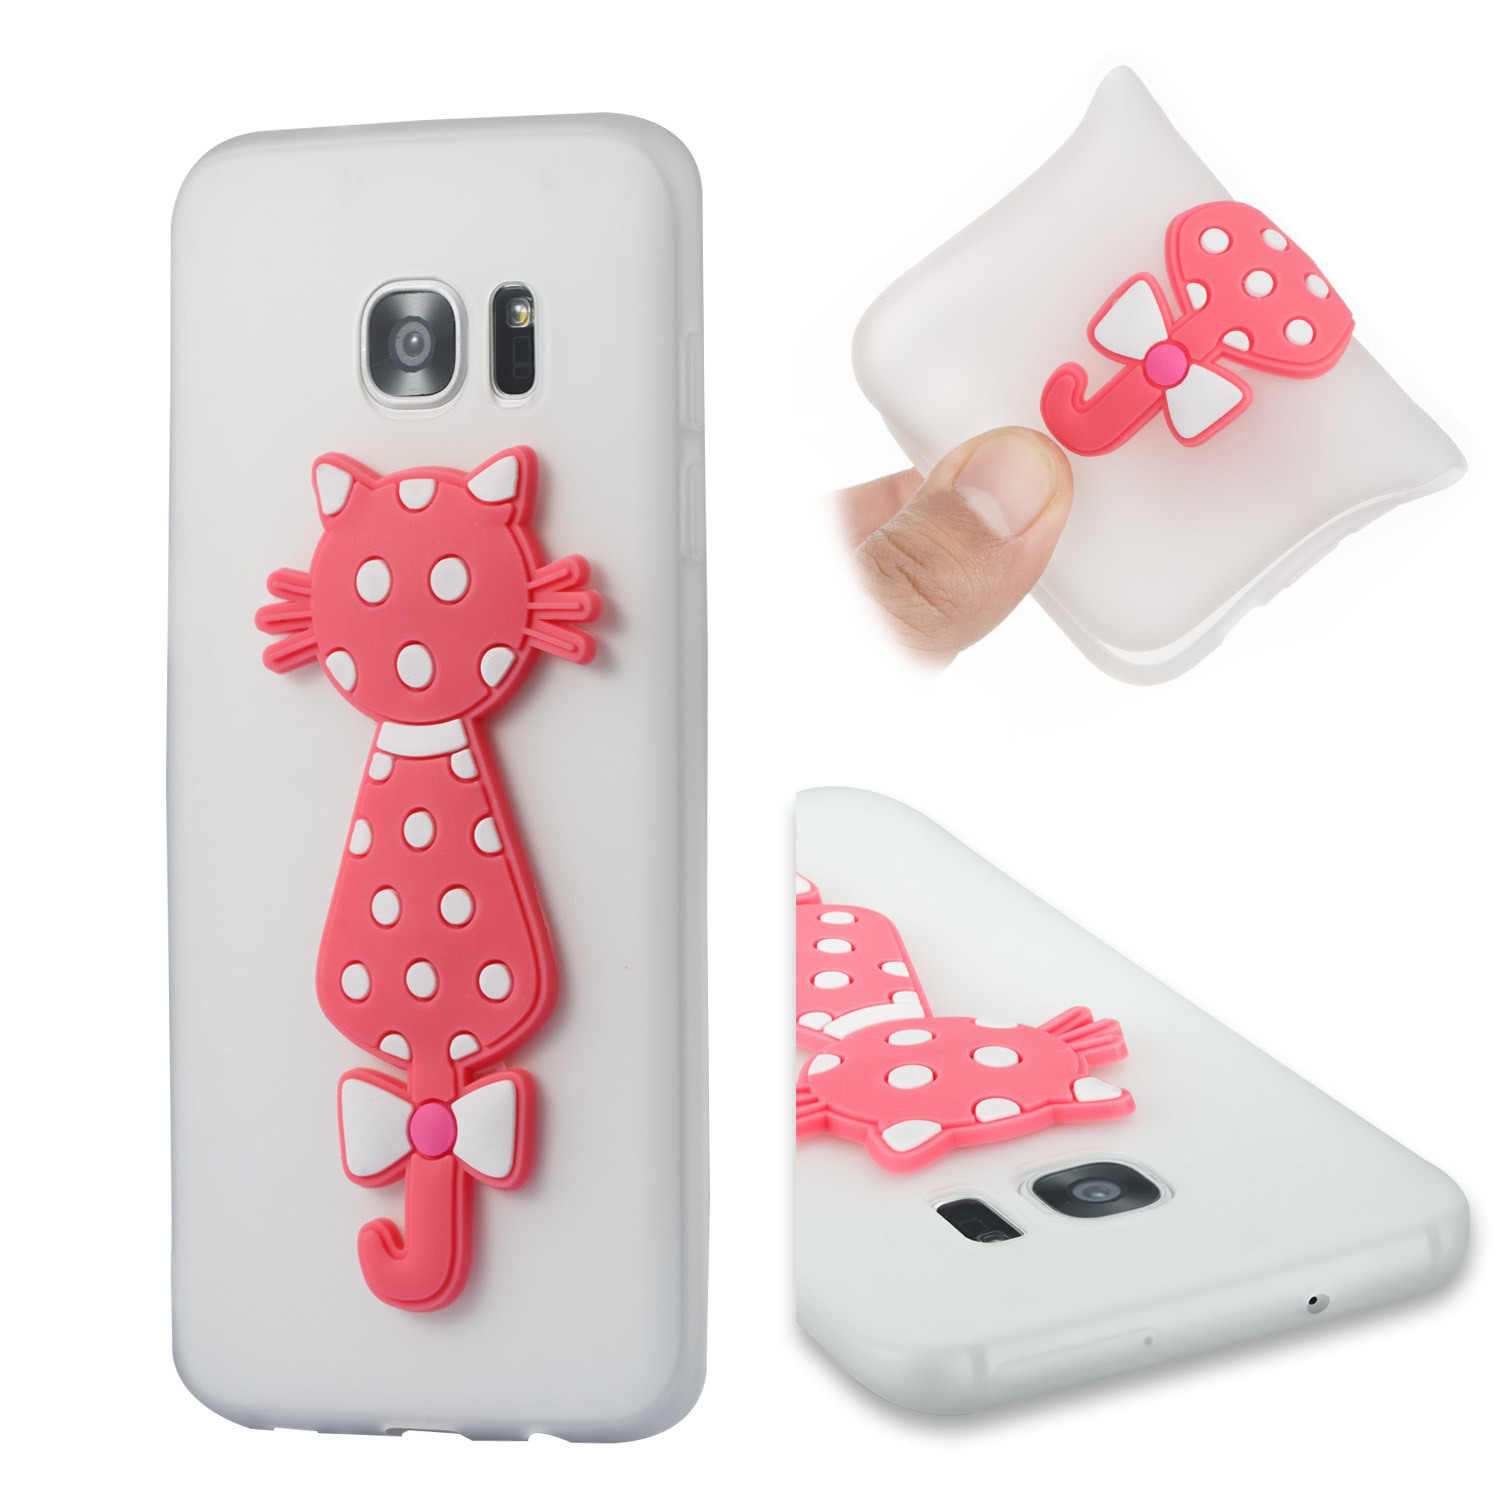 Silicone Cartoon 3D Cat TPU Cover Cubierta Phone Case Bag Kryty Shell For Samsung Sumsung Samsug Galaxy Galax S7 Edge SM G935F